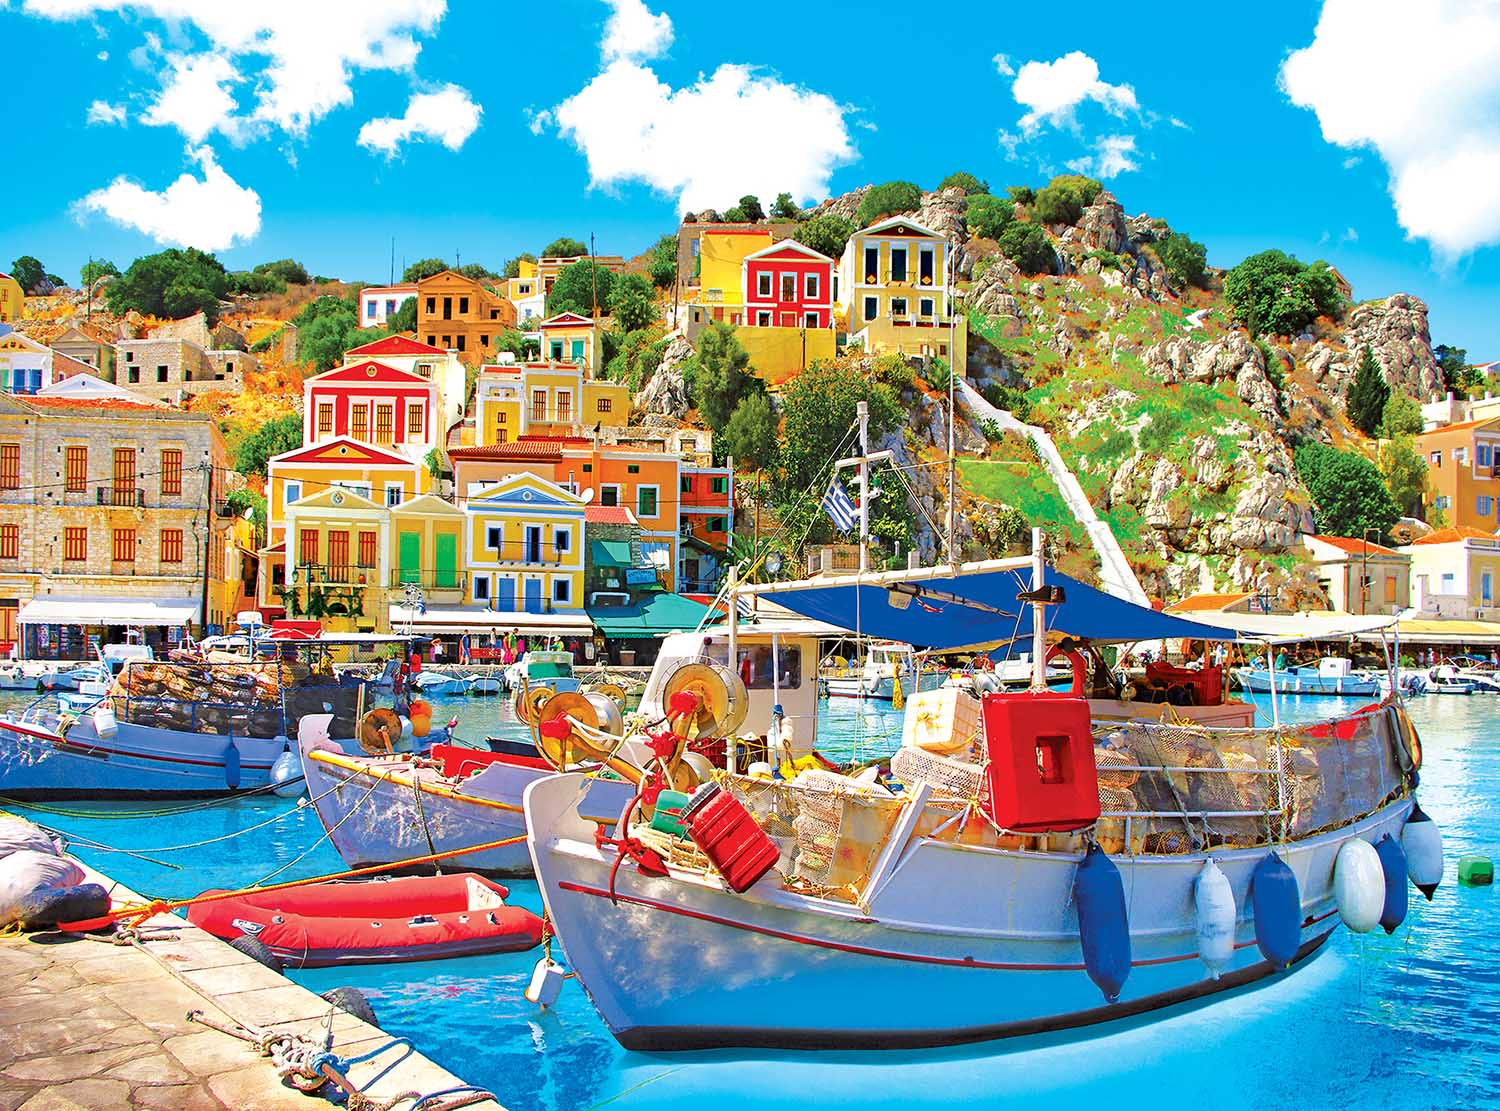 Symi With Boats In The Harbor, Greece Boats Jigsaw Puzzle